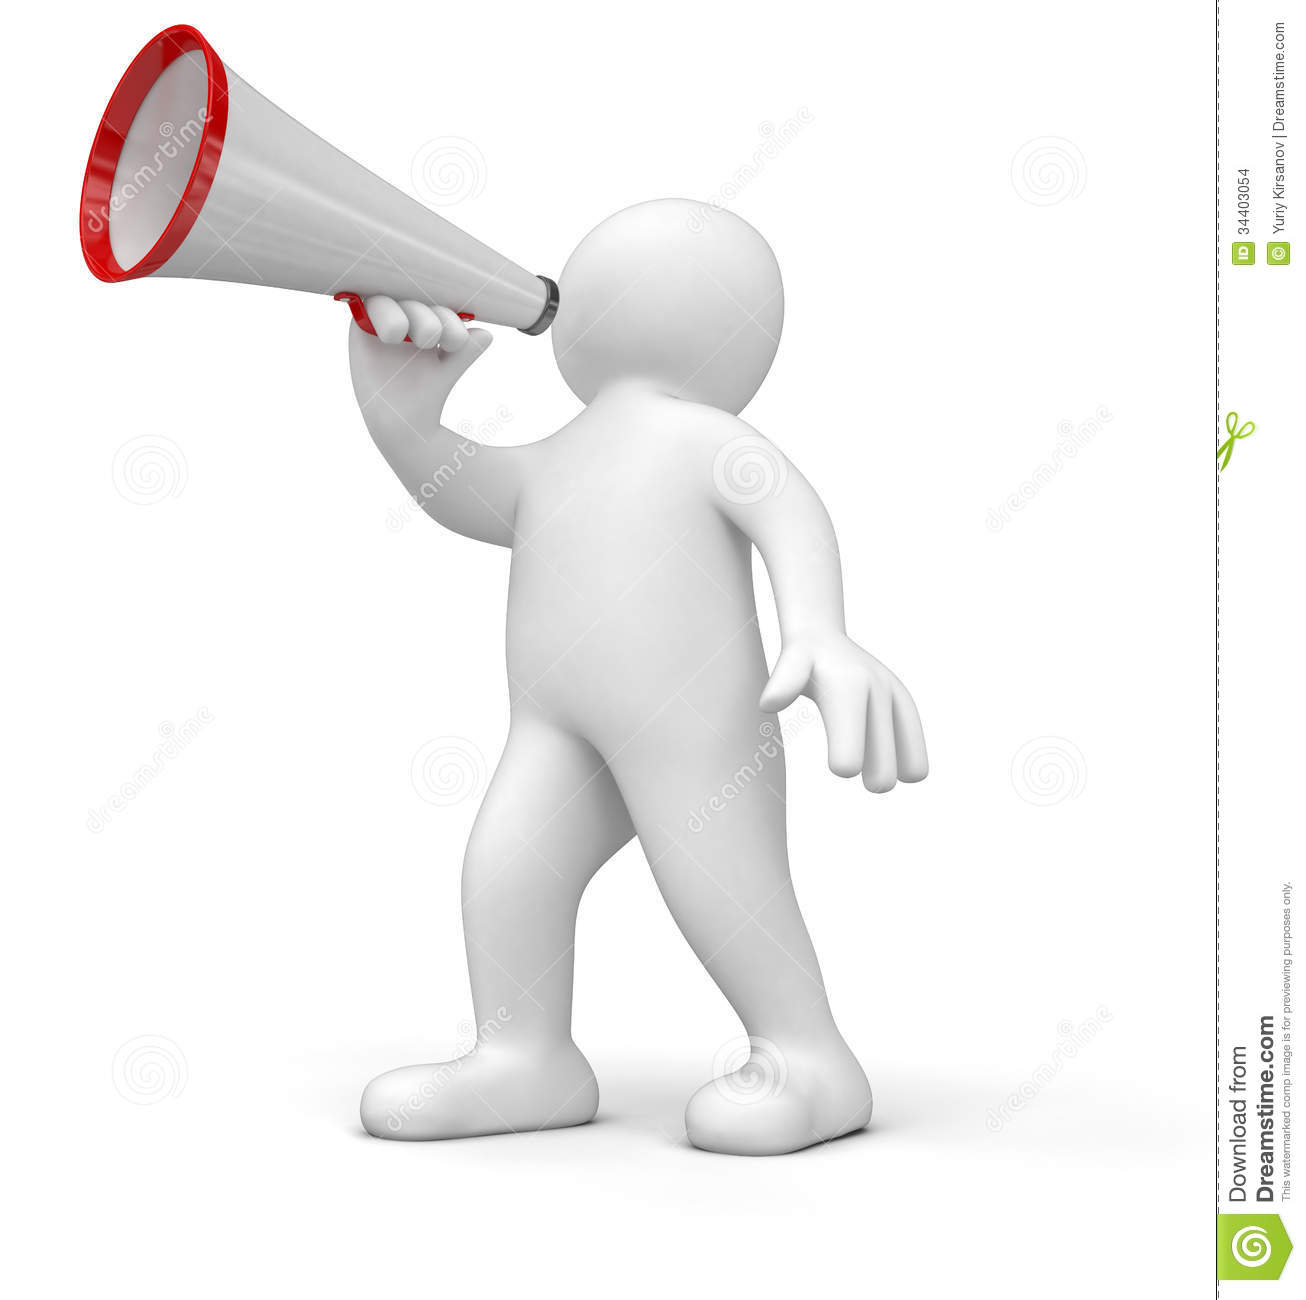 Man with megaphone. Image with clipping path.